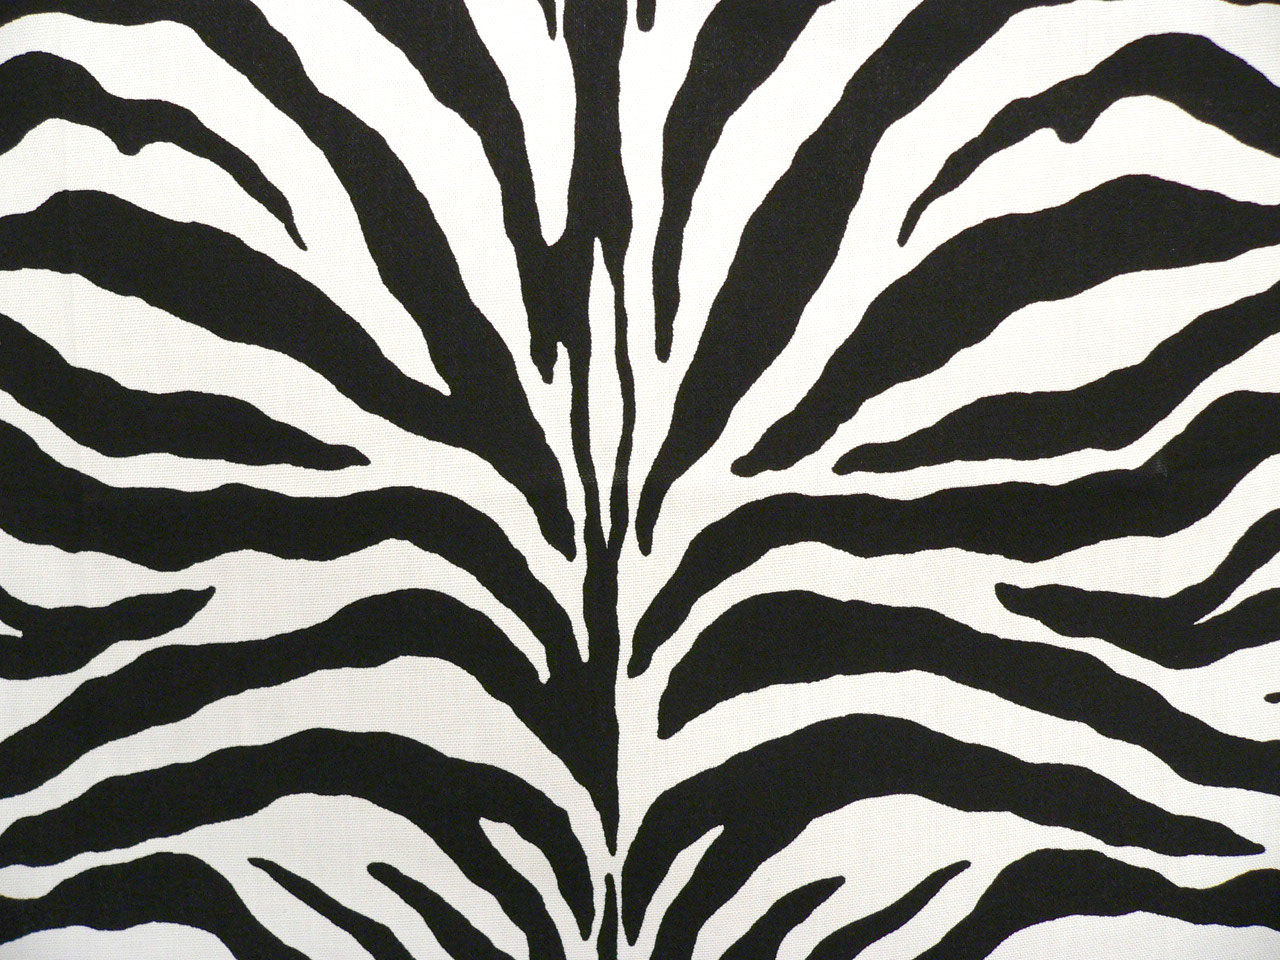 Zebra Pattern Repeat O...